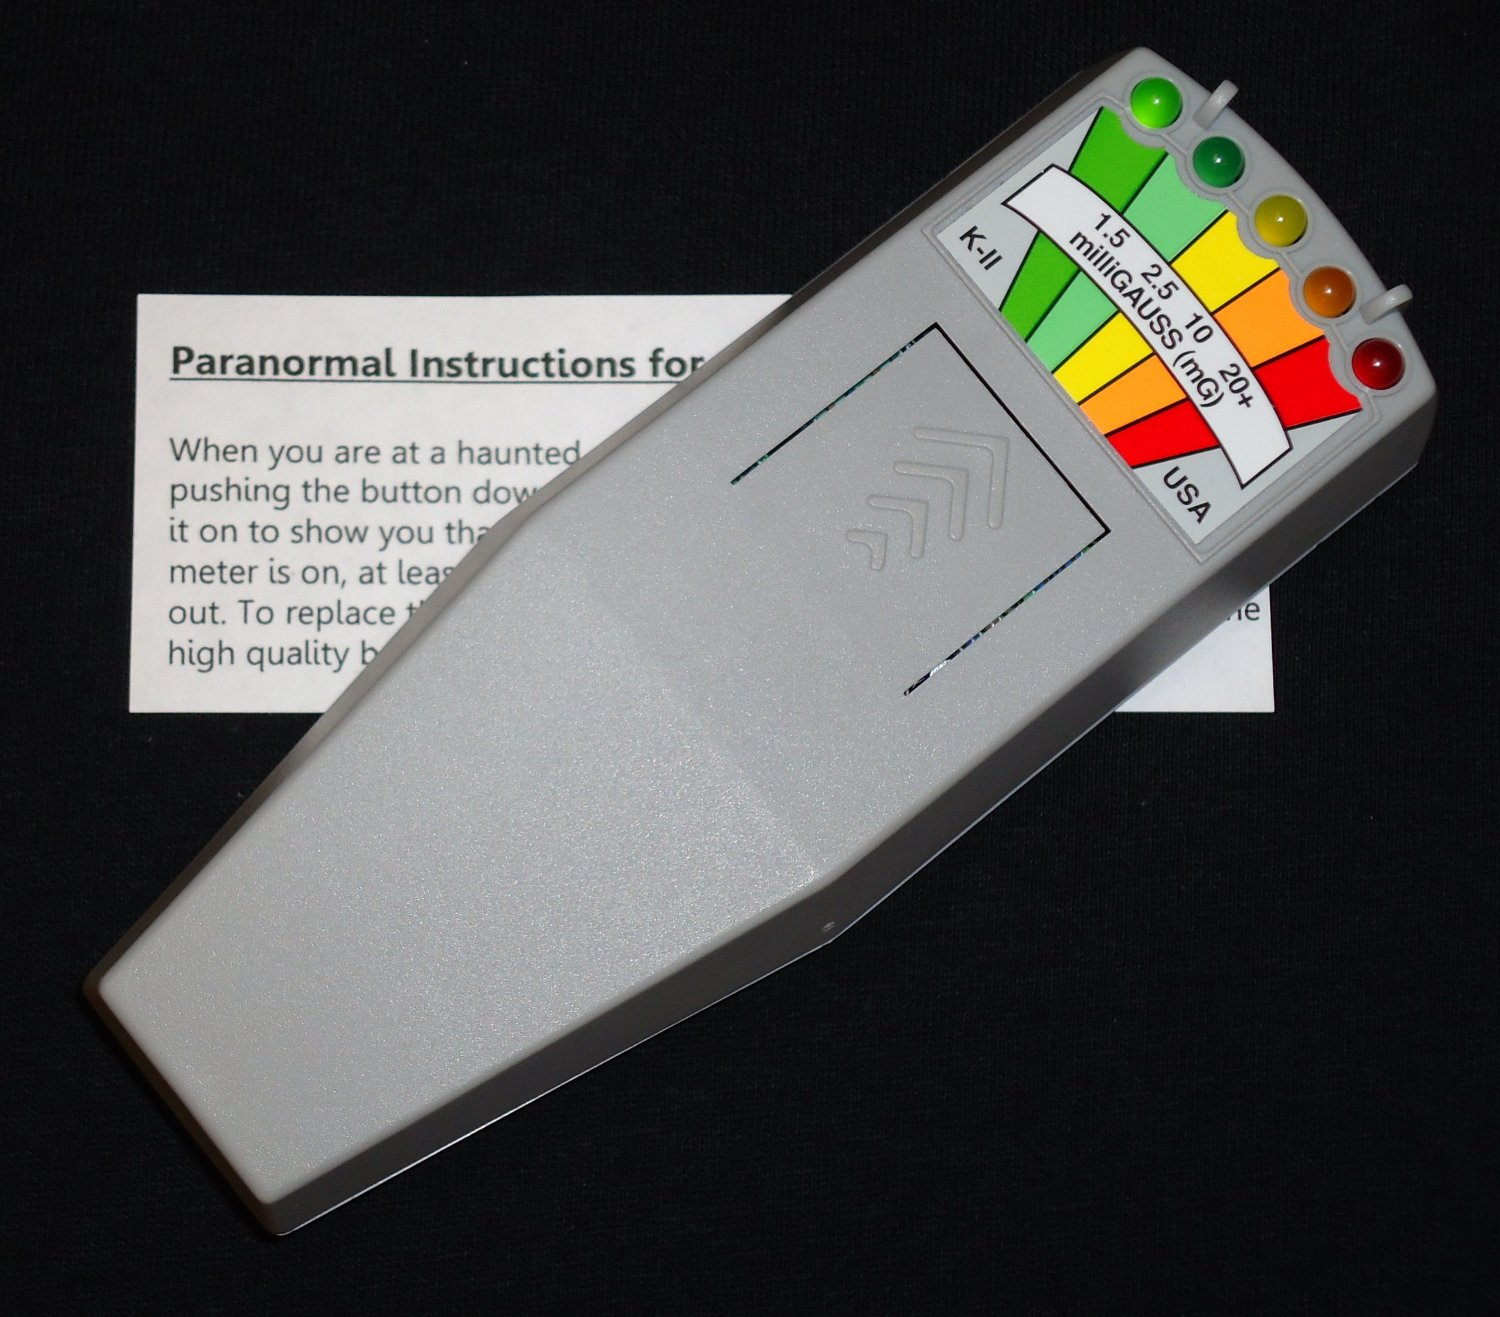 KII EMF Ghost Meter Deluxe with Paranormal Users Manual